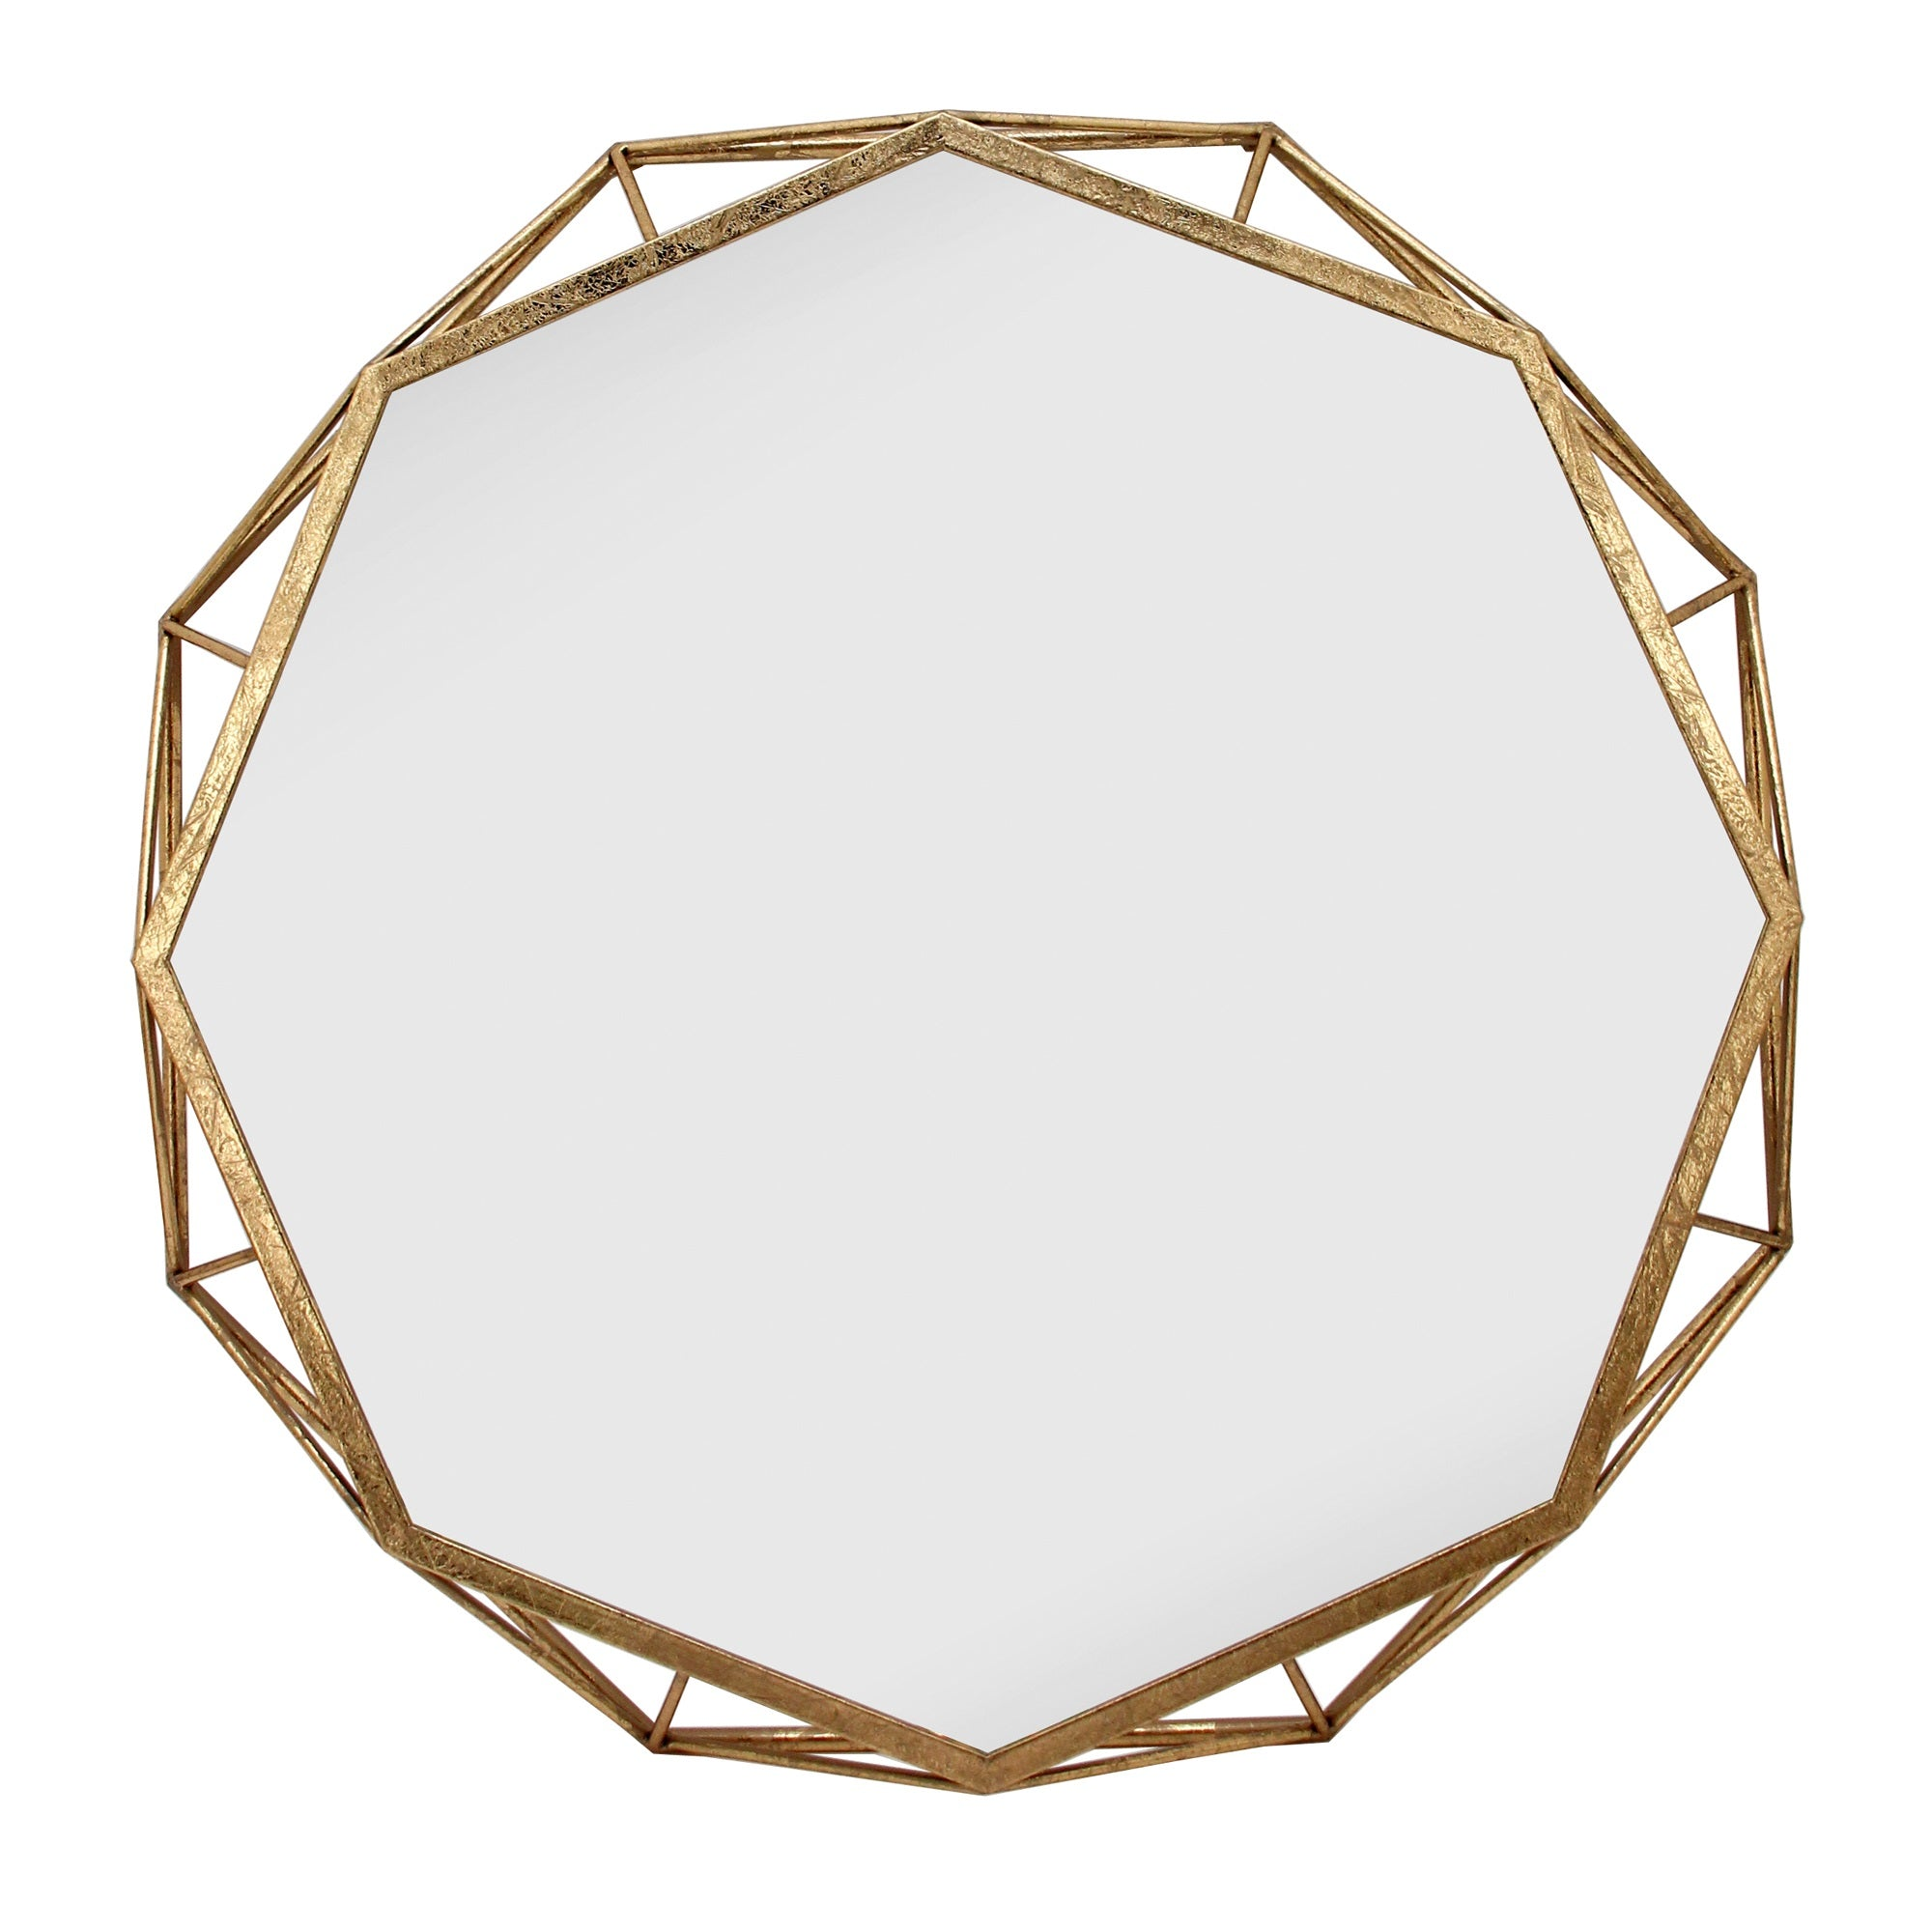 Gold Octagon Mirror 28""